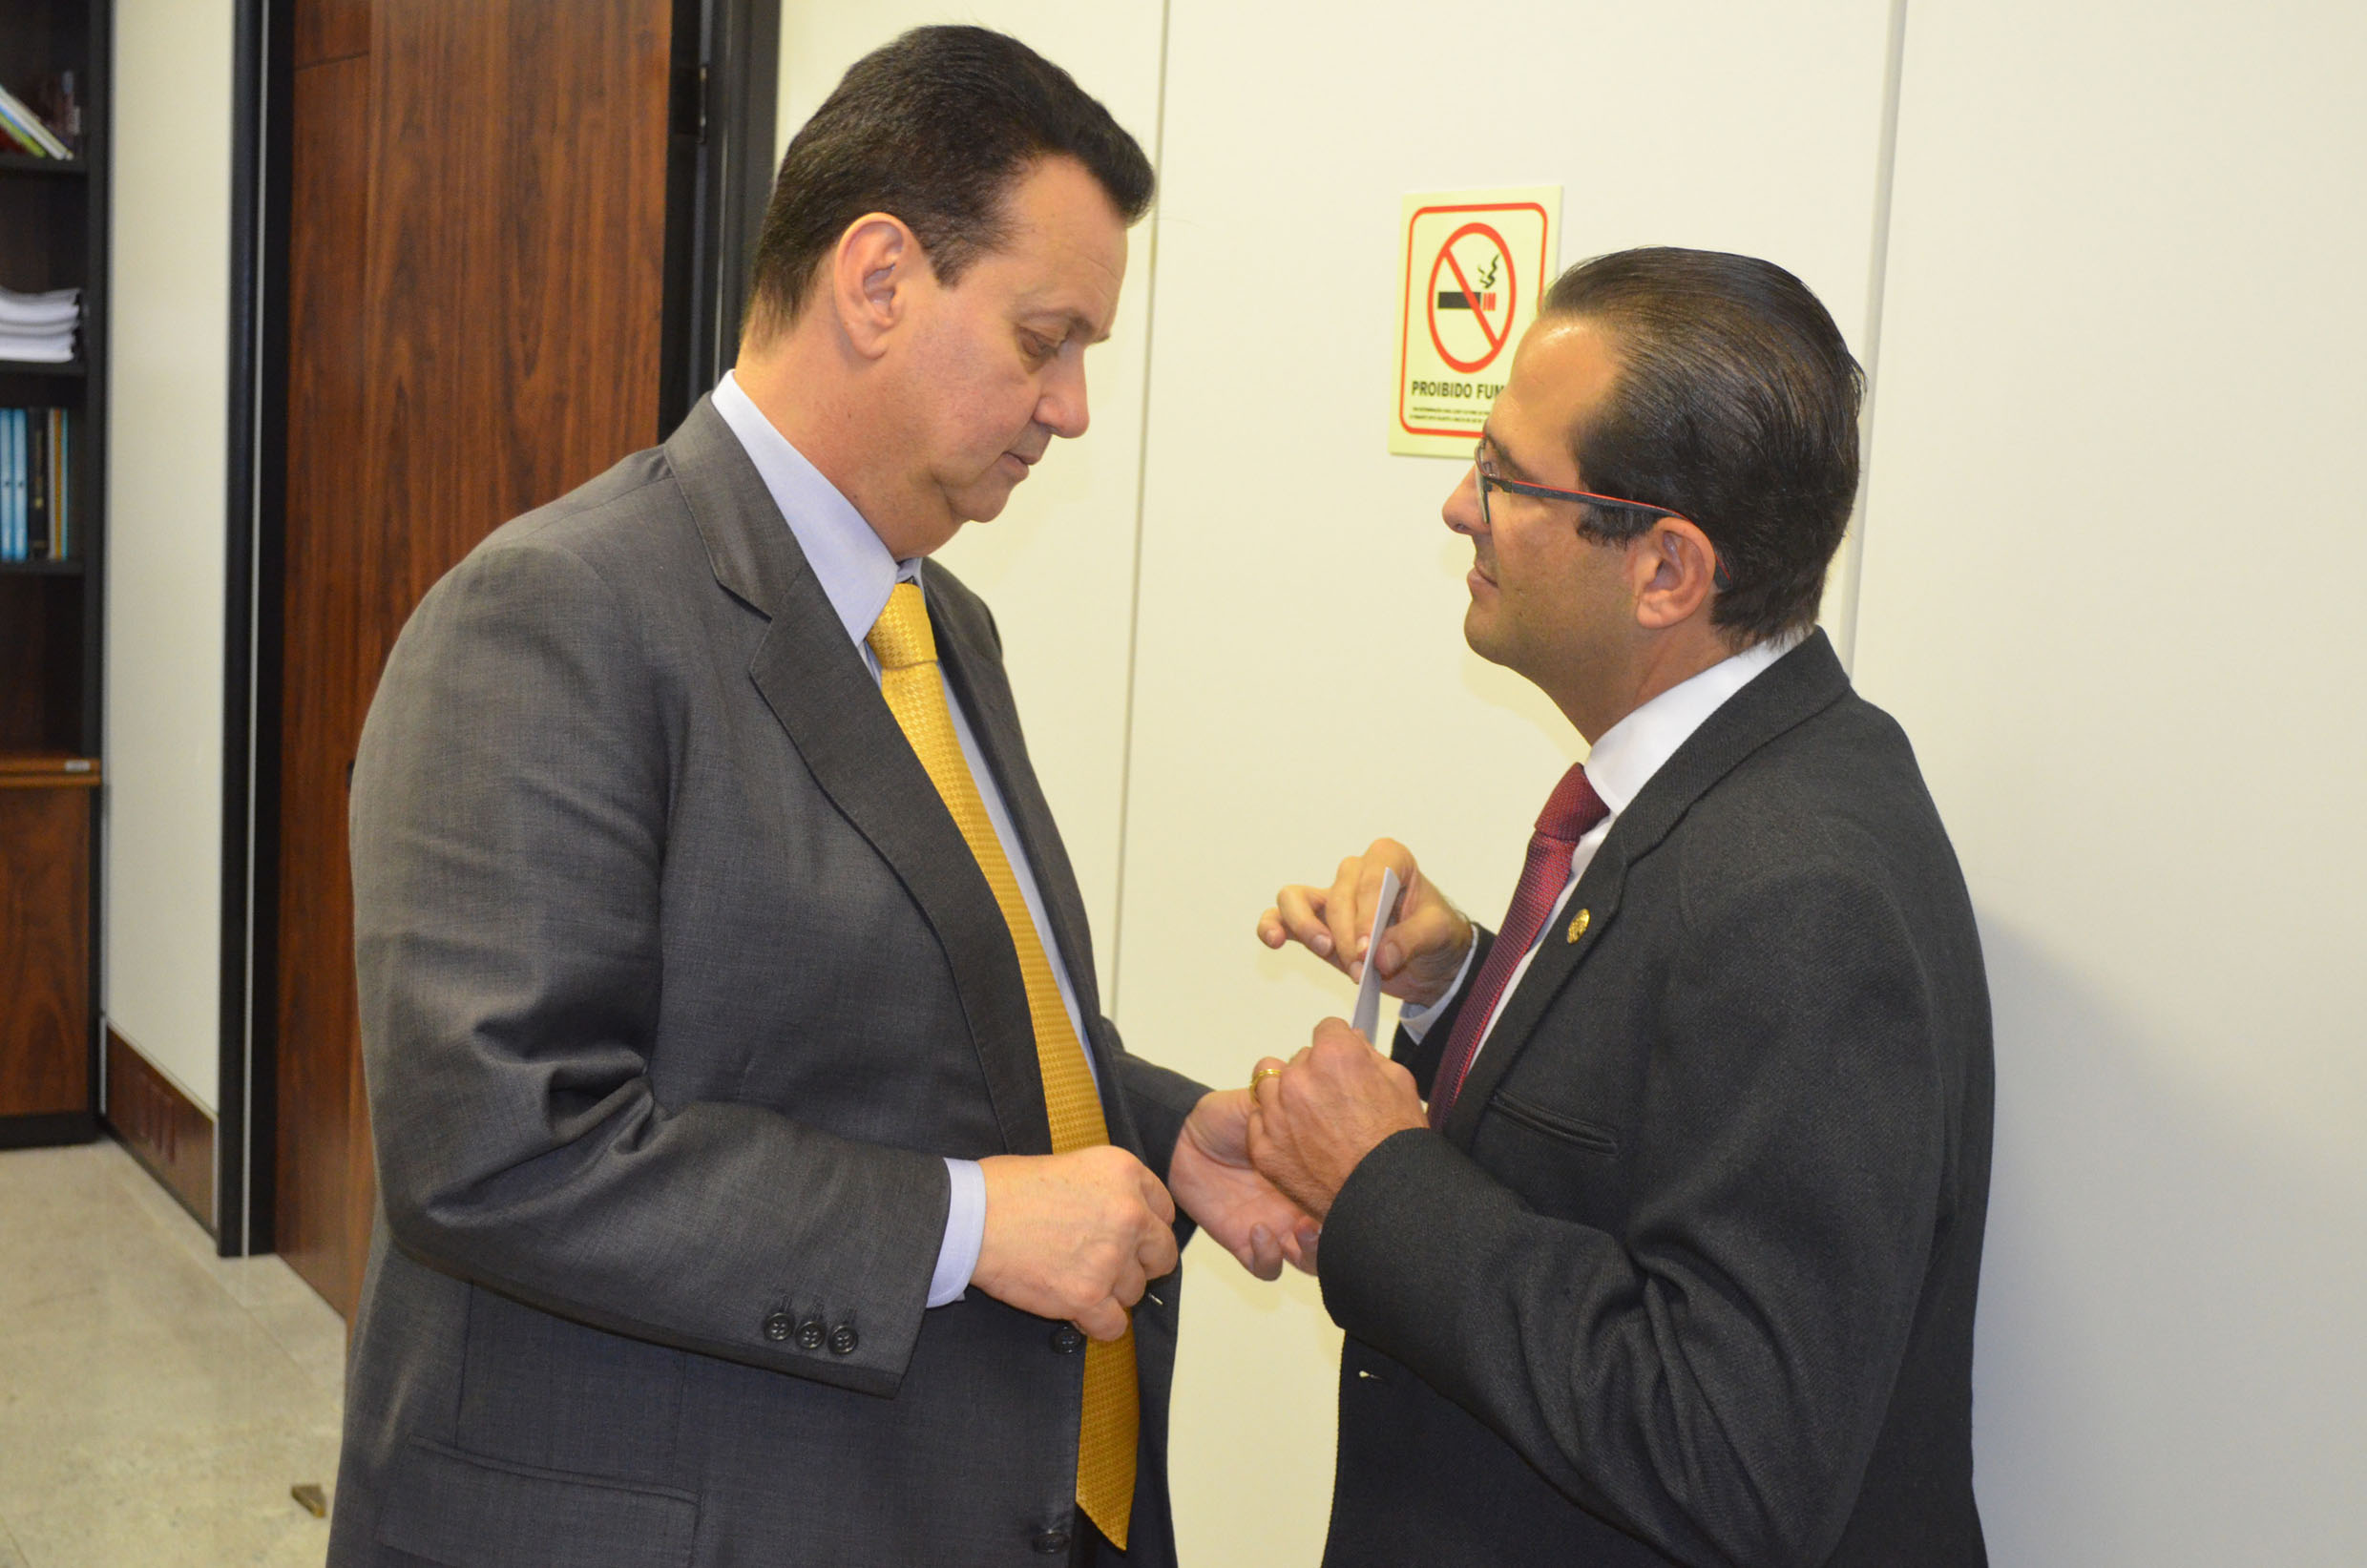 Gilberto Kassab e Edmir Chedid<a style='float:right' href='https://www3.al.sp.gov.br/repositorio/noticia/N-06-2016/fg192085.jpg' target=_blank><img src='/_img/material-file-download-white.png' width='14px' alt='Clique para baixar a imagem'></a>